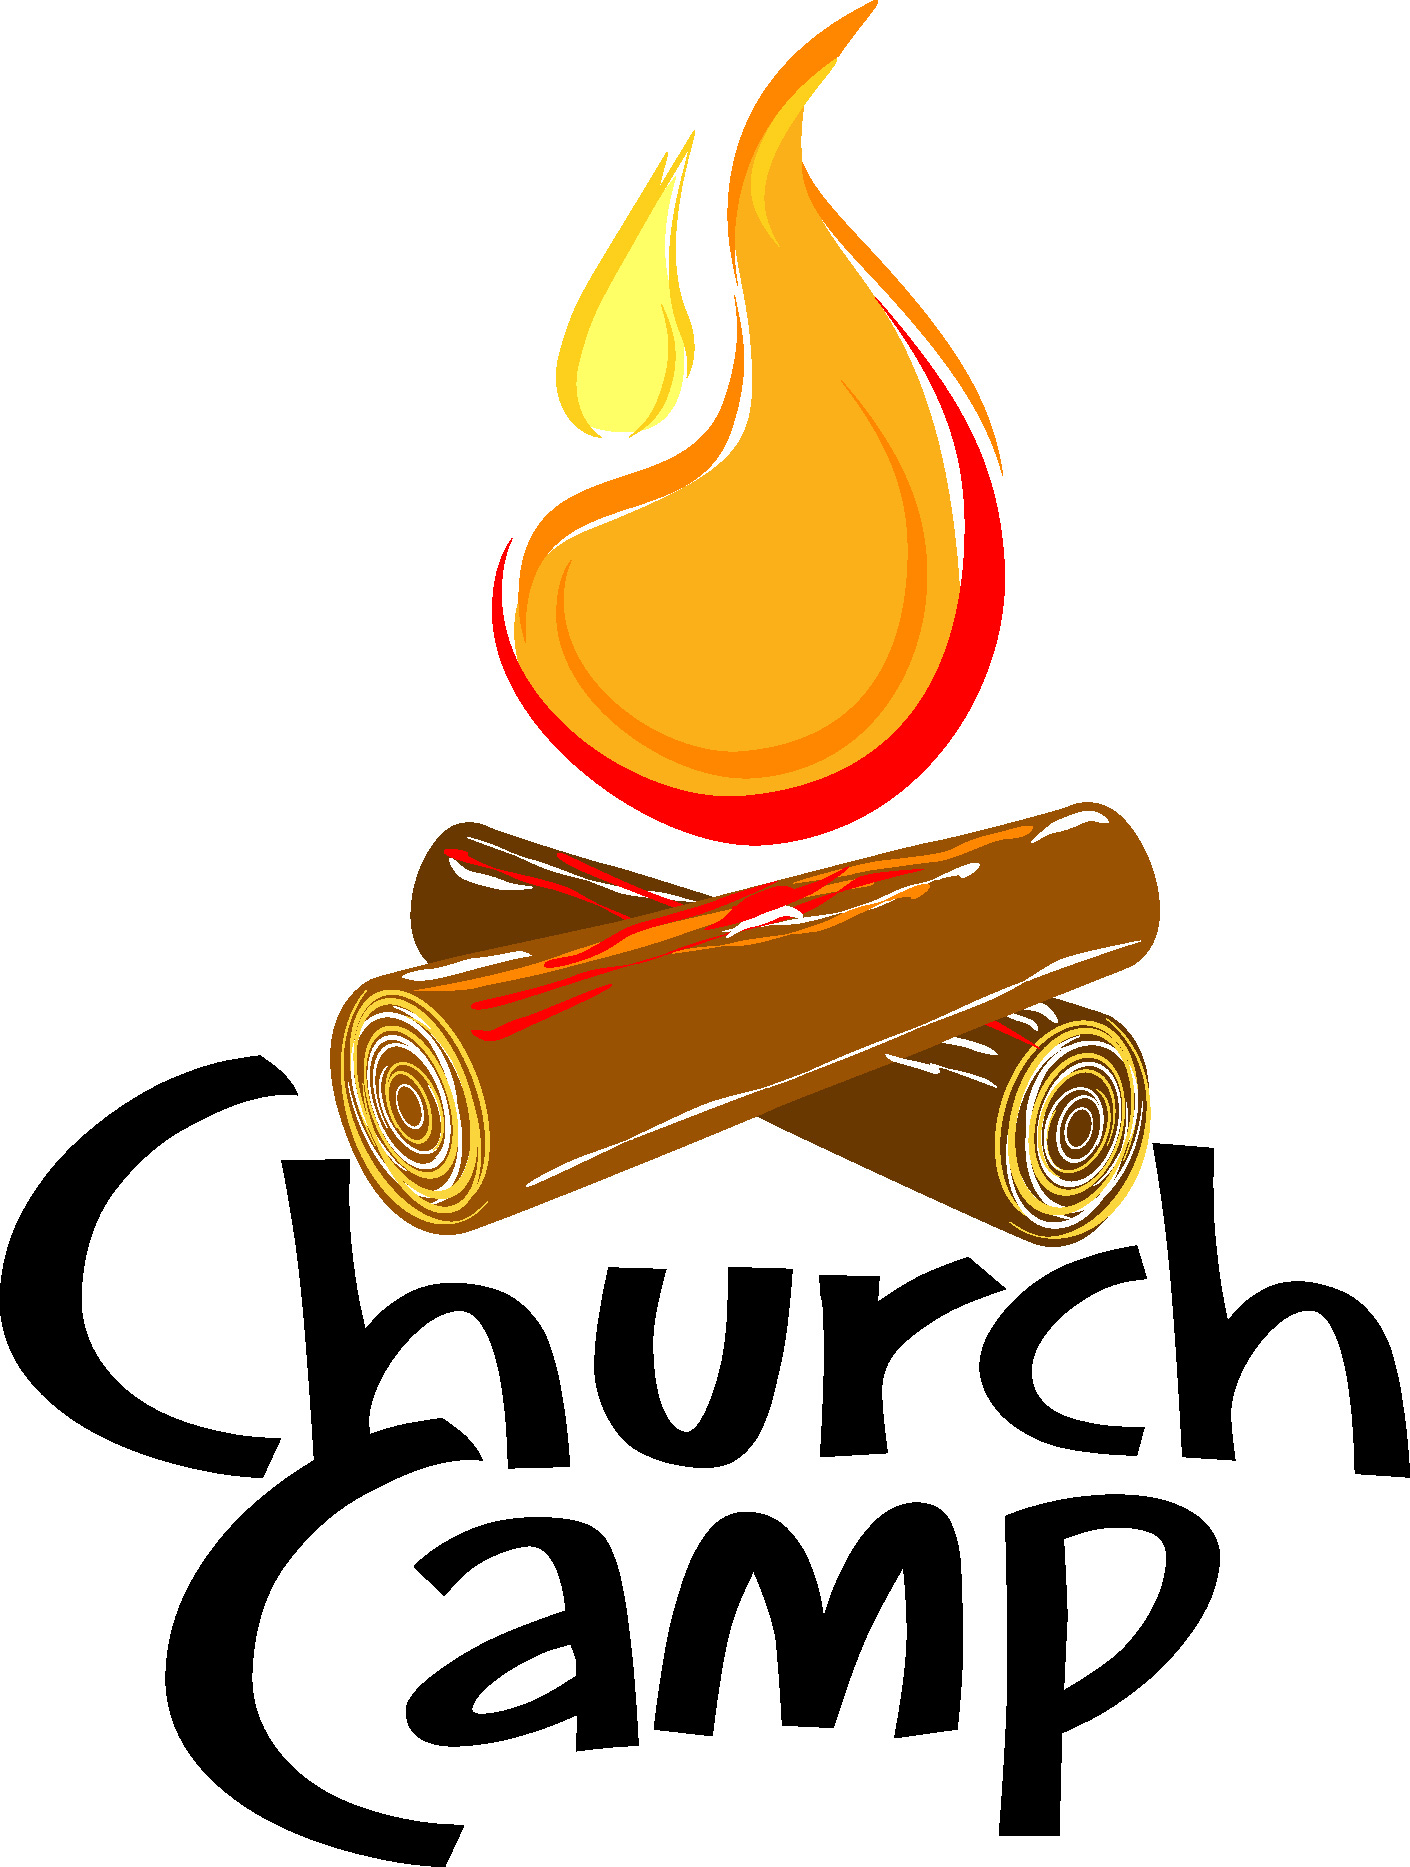 Clipground clip art library. Campfire clipart simple